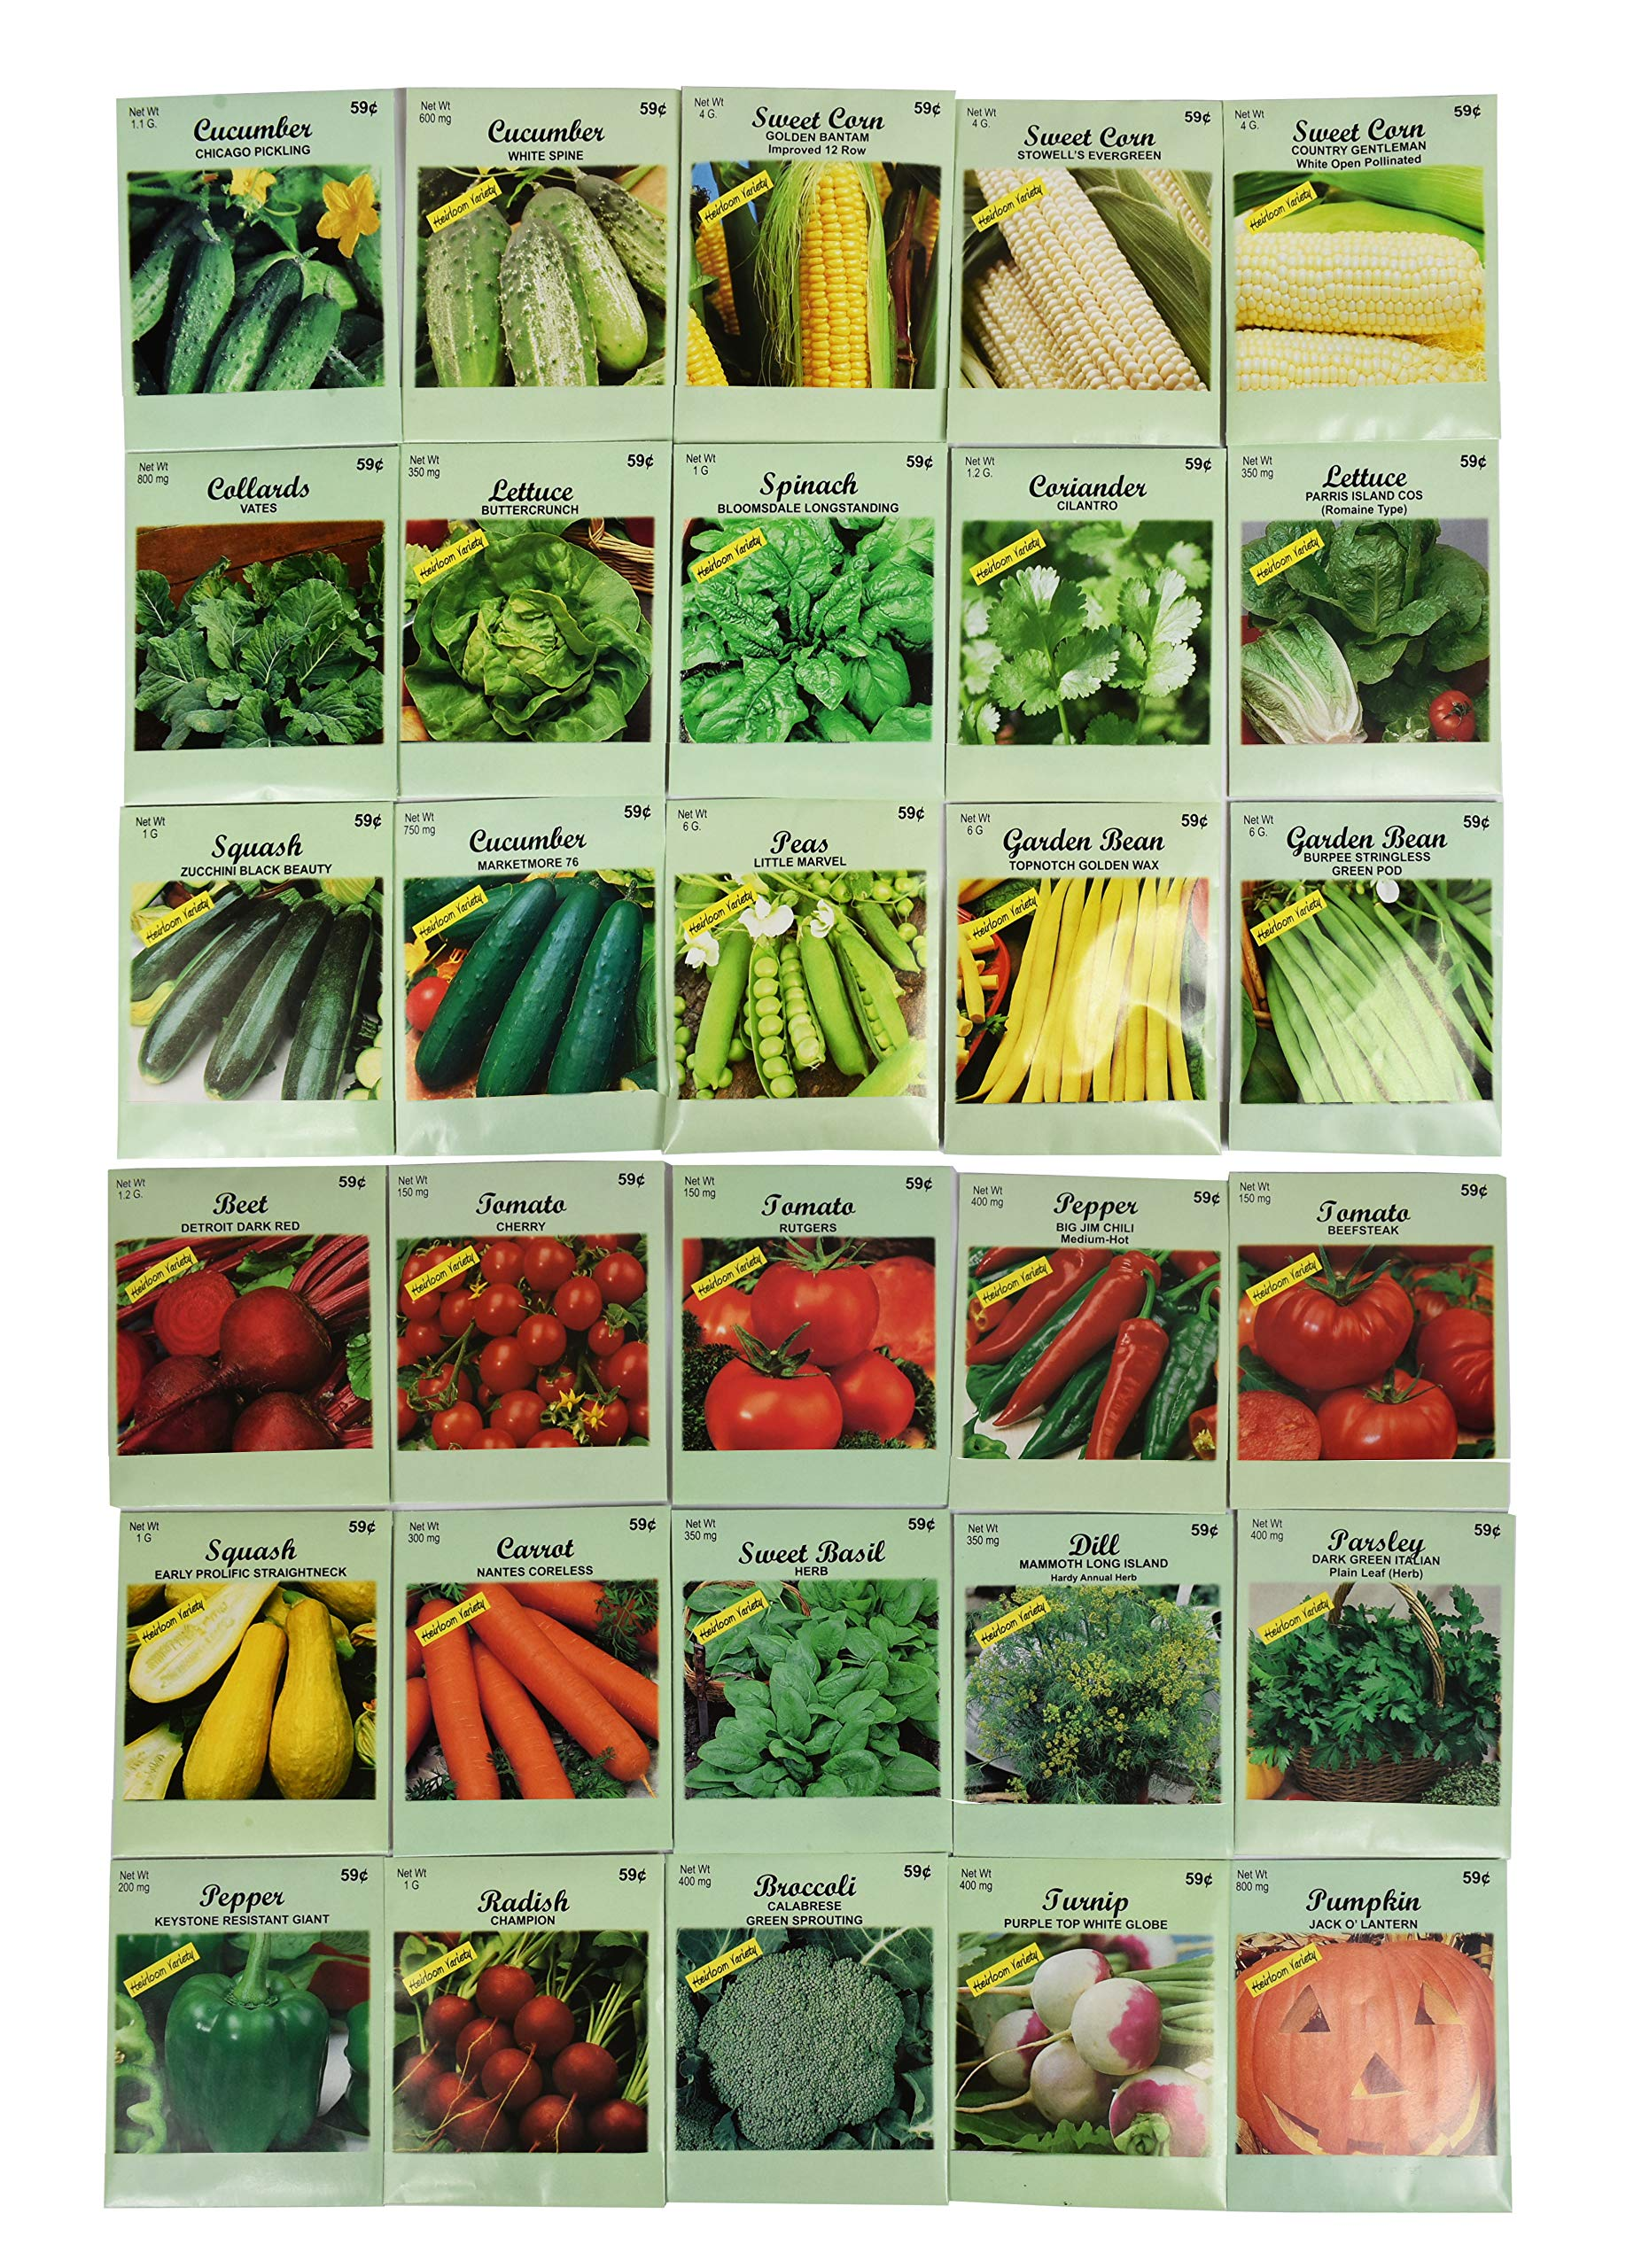 Set of 30 Pack Vegetable Seeds! 30 Varieties! Create a Deluxe Garden! All Seeds are Heirloom, 100% Non-GMO! by Black Duck Brand 30 Different Varieties by Black Duck Brand